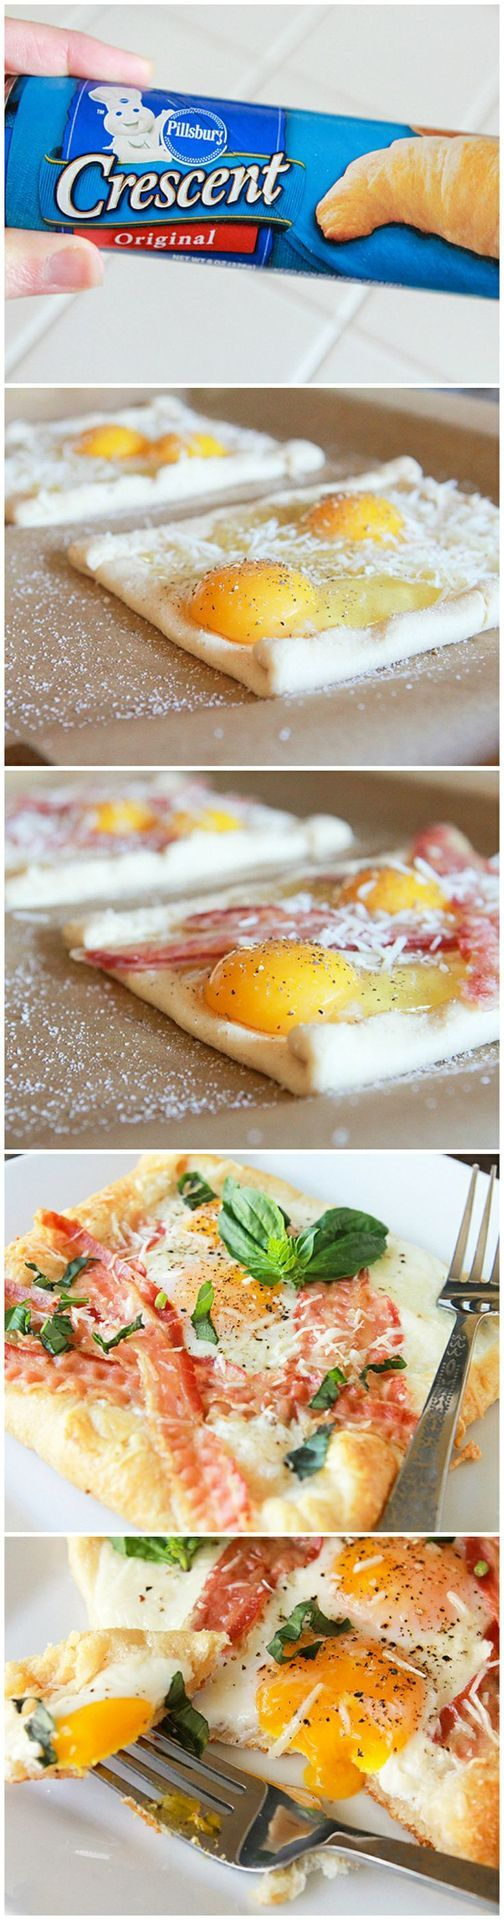 400 degrees - cut one roll in half - pinch up edges 1/2 inch - two eggs & 3 pcs bacon on each - 1 T parm cheese on each - bake 10-15 min. (add fresh parsley)